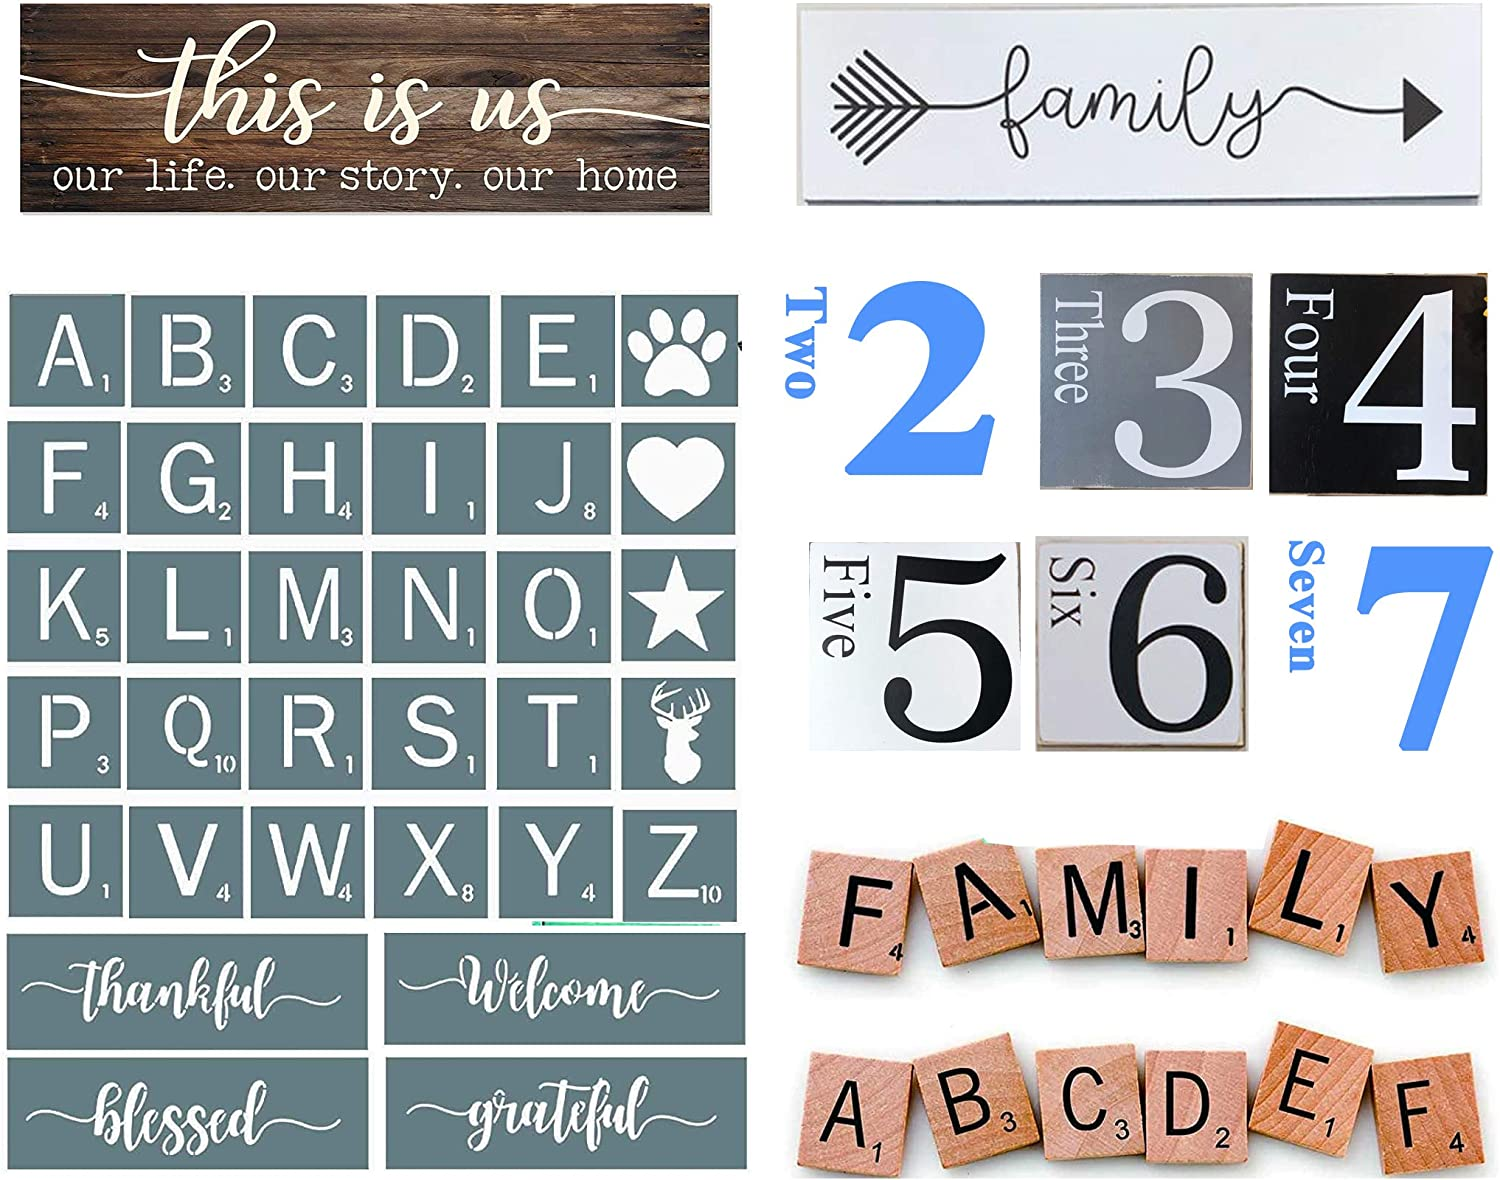 Scrabble Letters Stencil Set, Welcome Stencil for Painting on Wood, Stencil for Scrabble Wall Tile Family Wall Art, Rustic Wall Decor (4x4